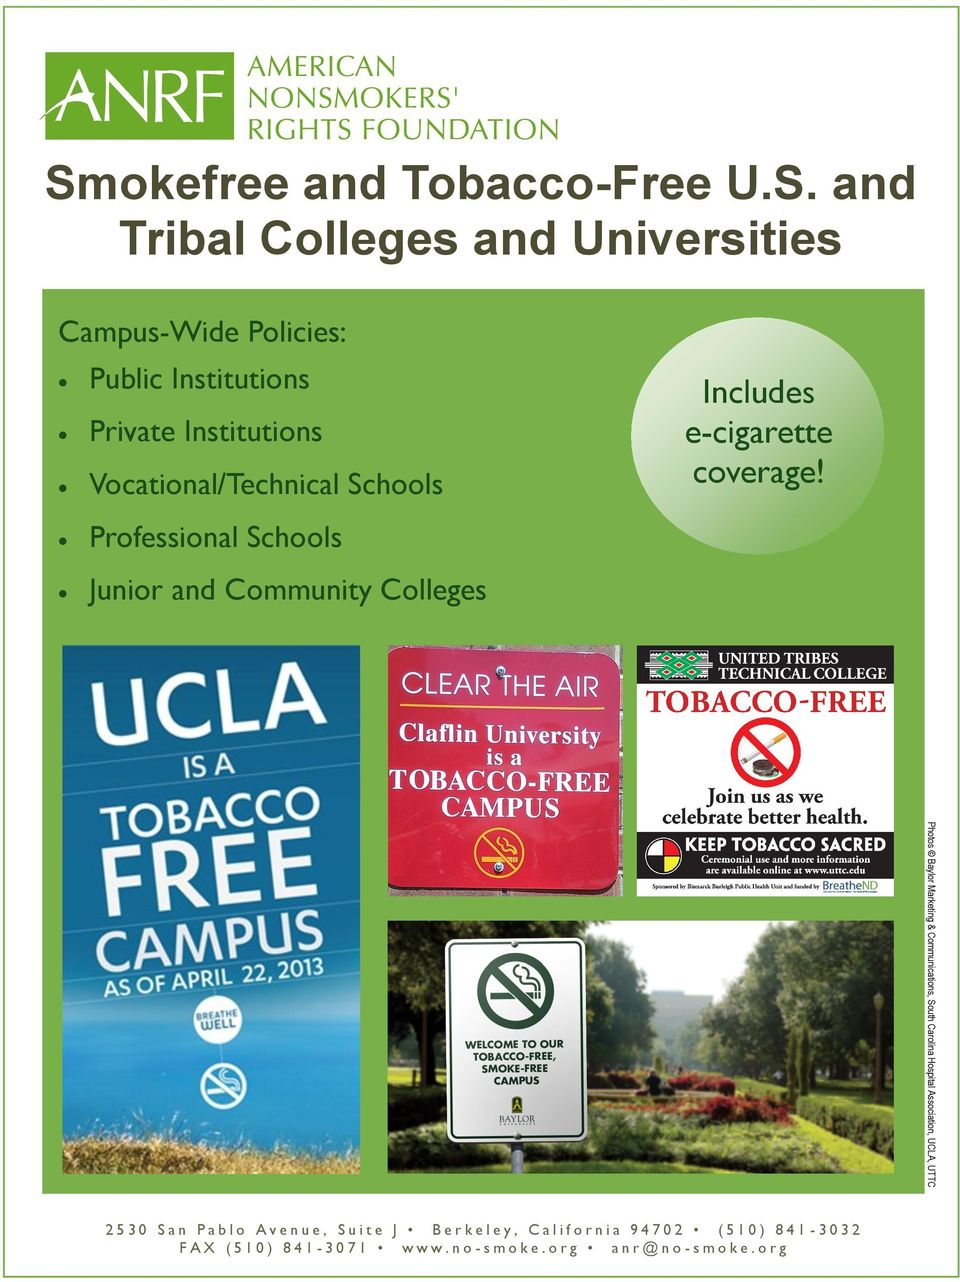 okefree and Tobacco-Free U.S.